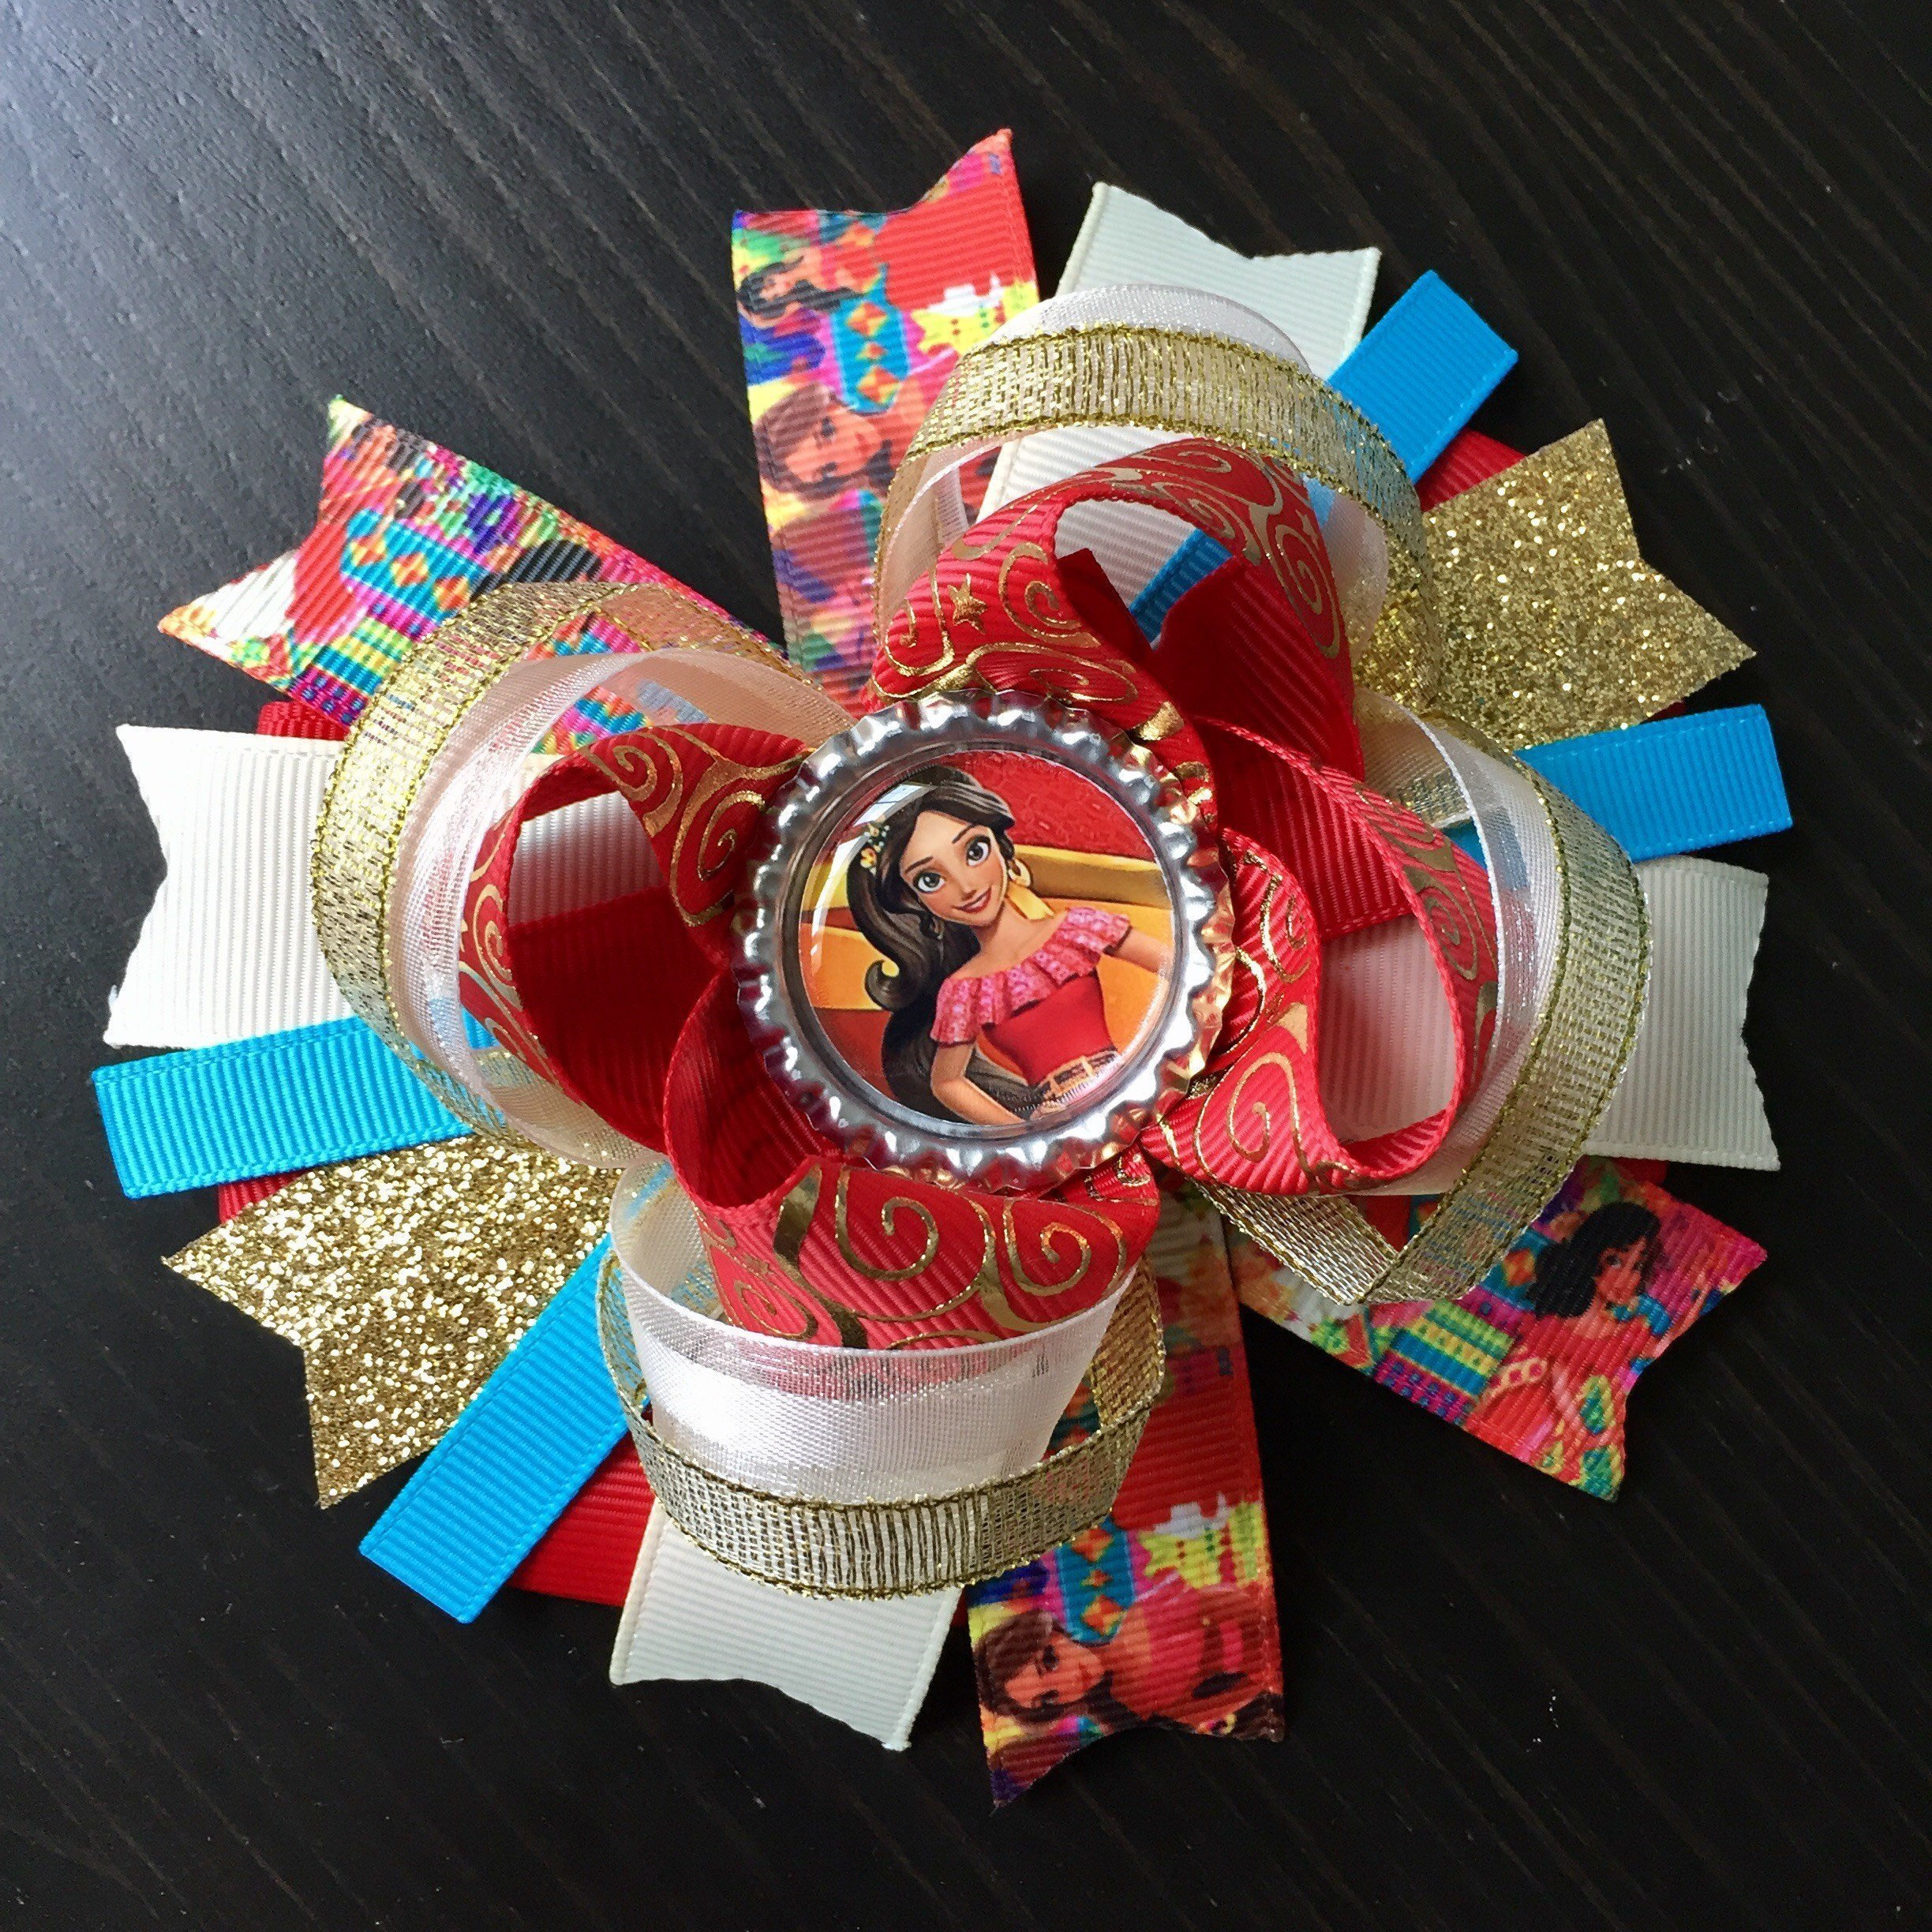 Princess Elena of Avalor Hair Bow, Red and Gold Princess Elena of Avalor Boutique Handmade Layered Hair Bow